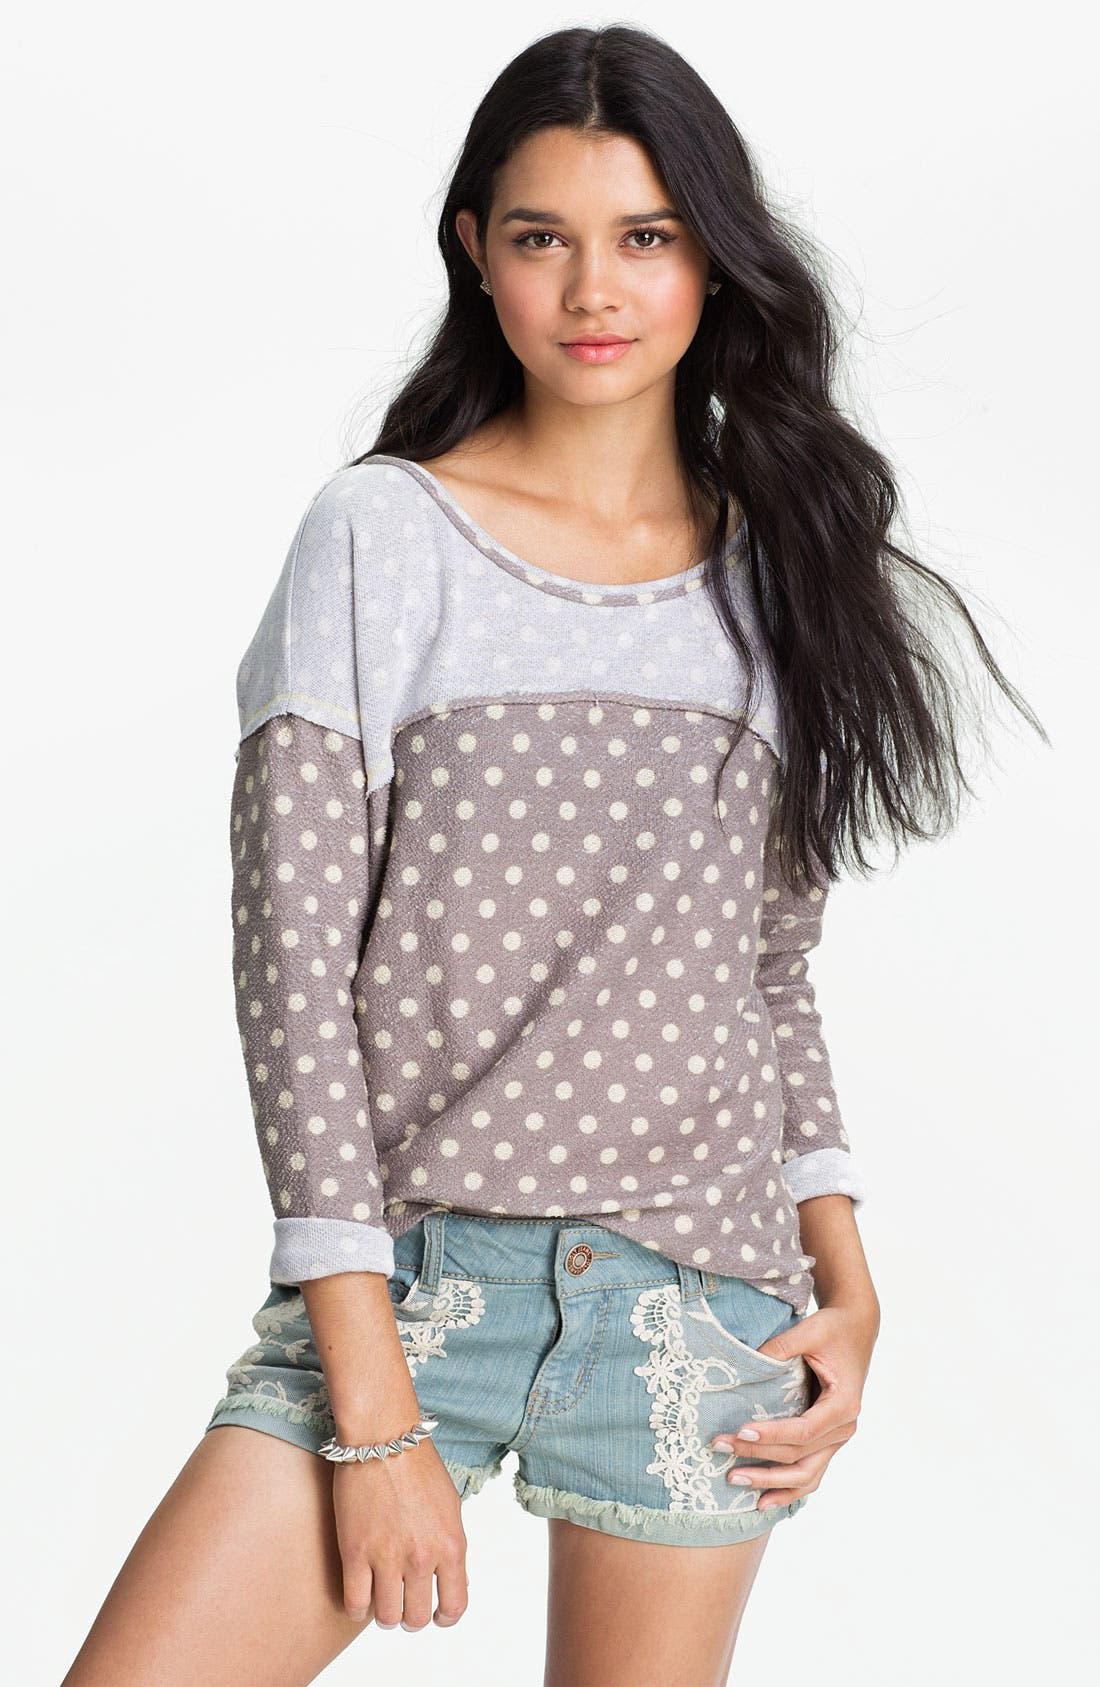 Alternate Image 1 Selected - Lush Polka Dot Reverse Terry Top (Juniors)